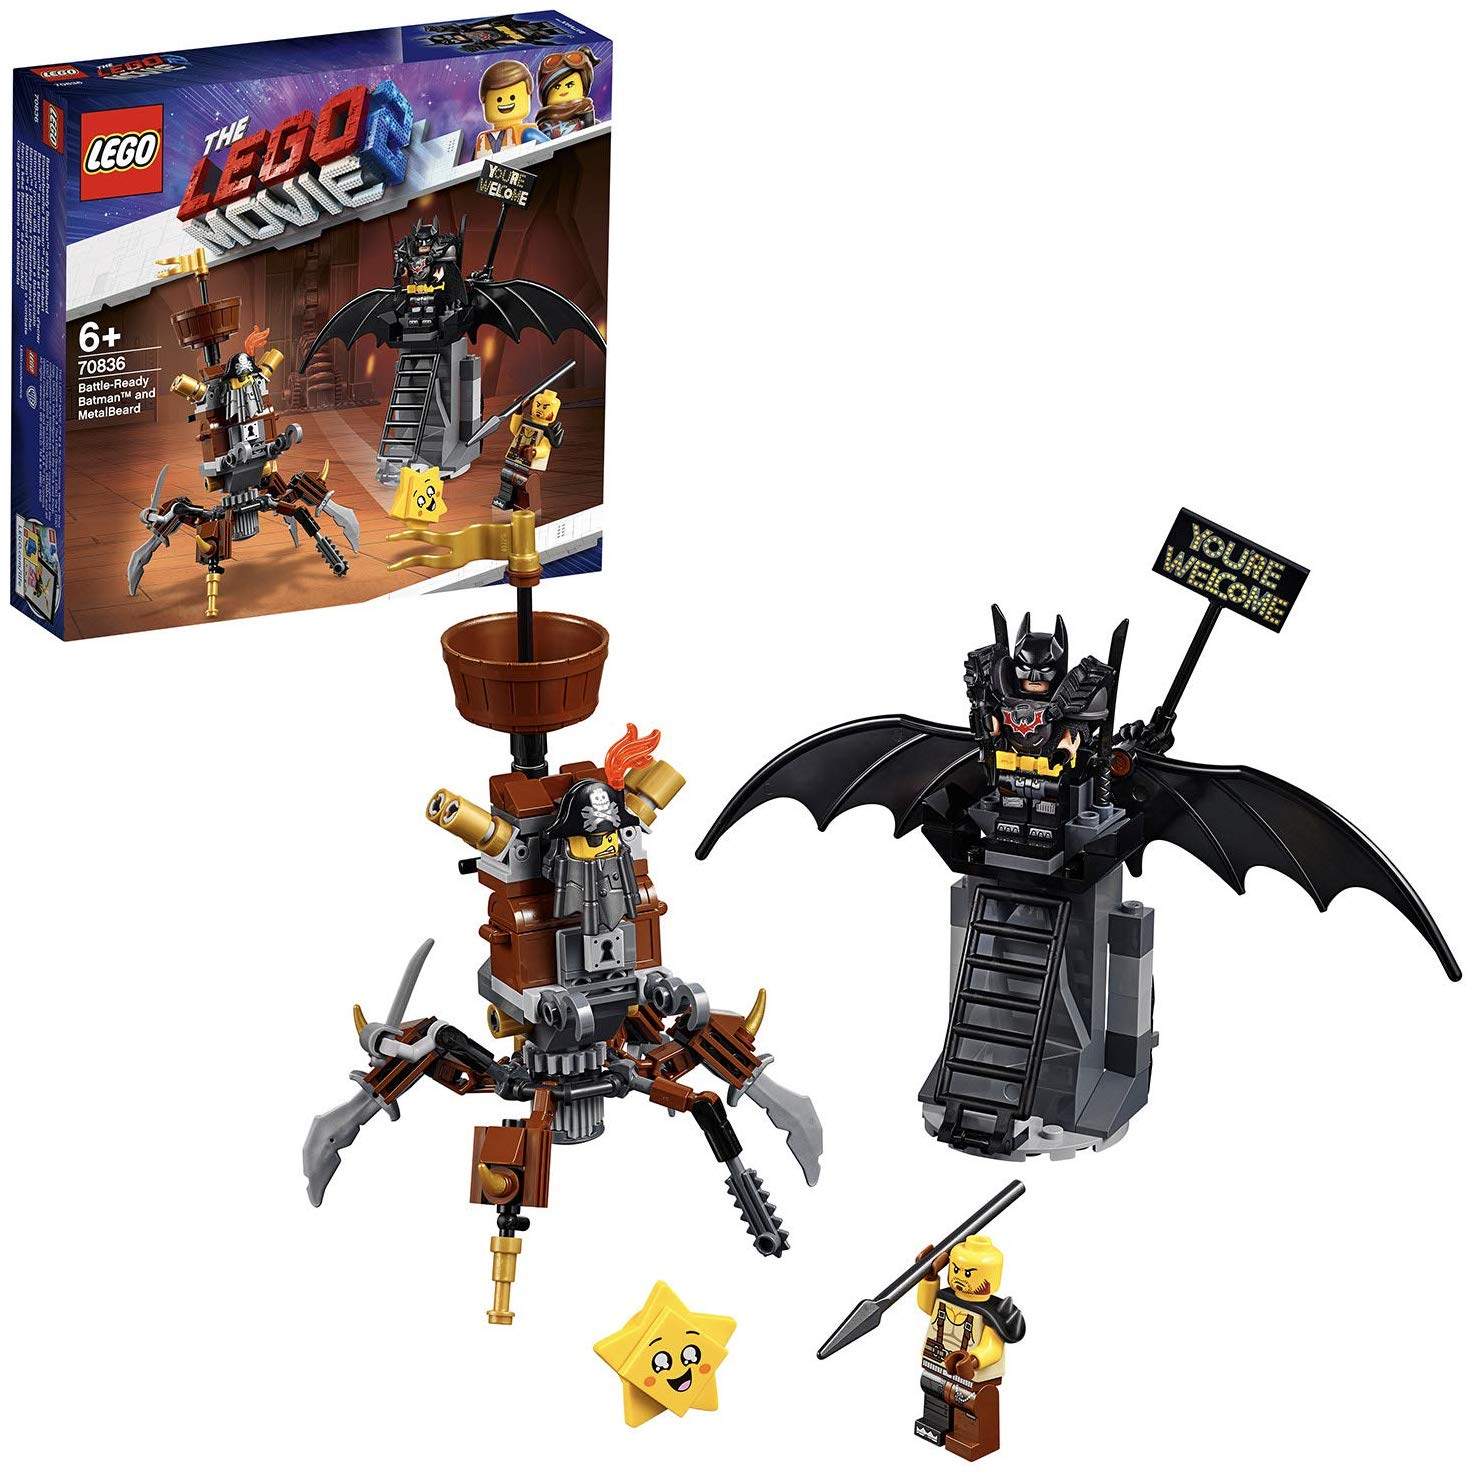 LEGO Movie 2 Battle Ready Batman and Metal Beard for £14.9 on Amazon